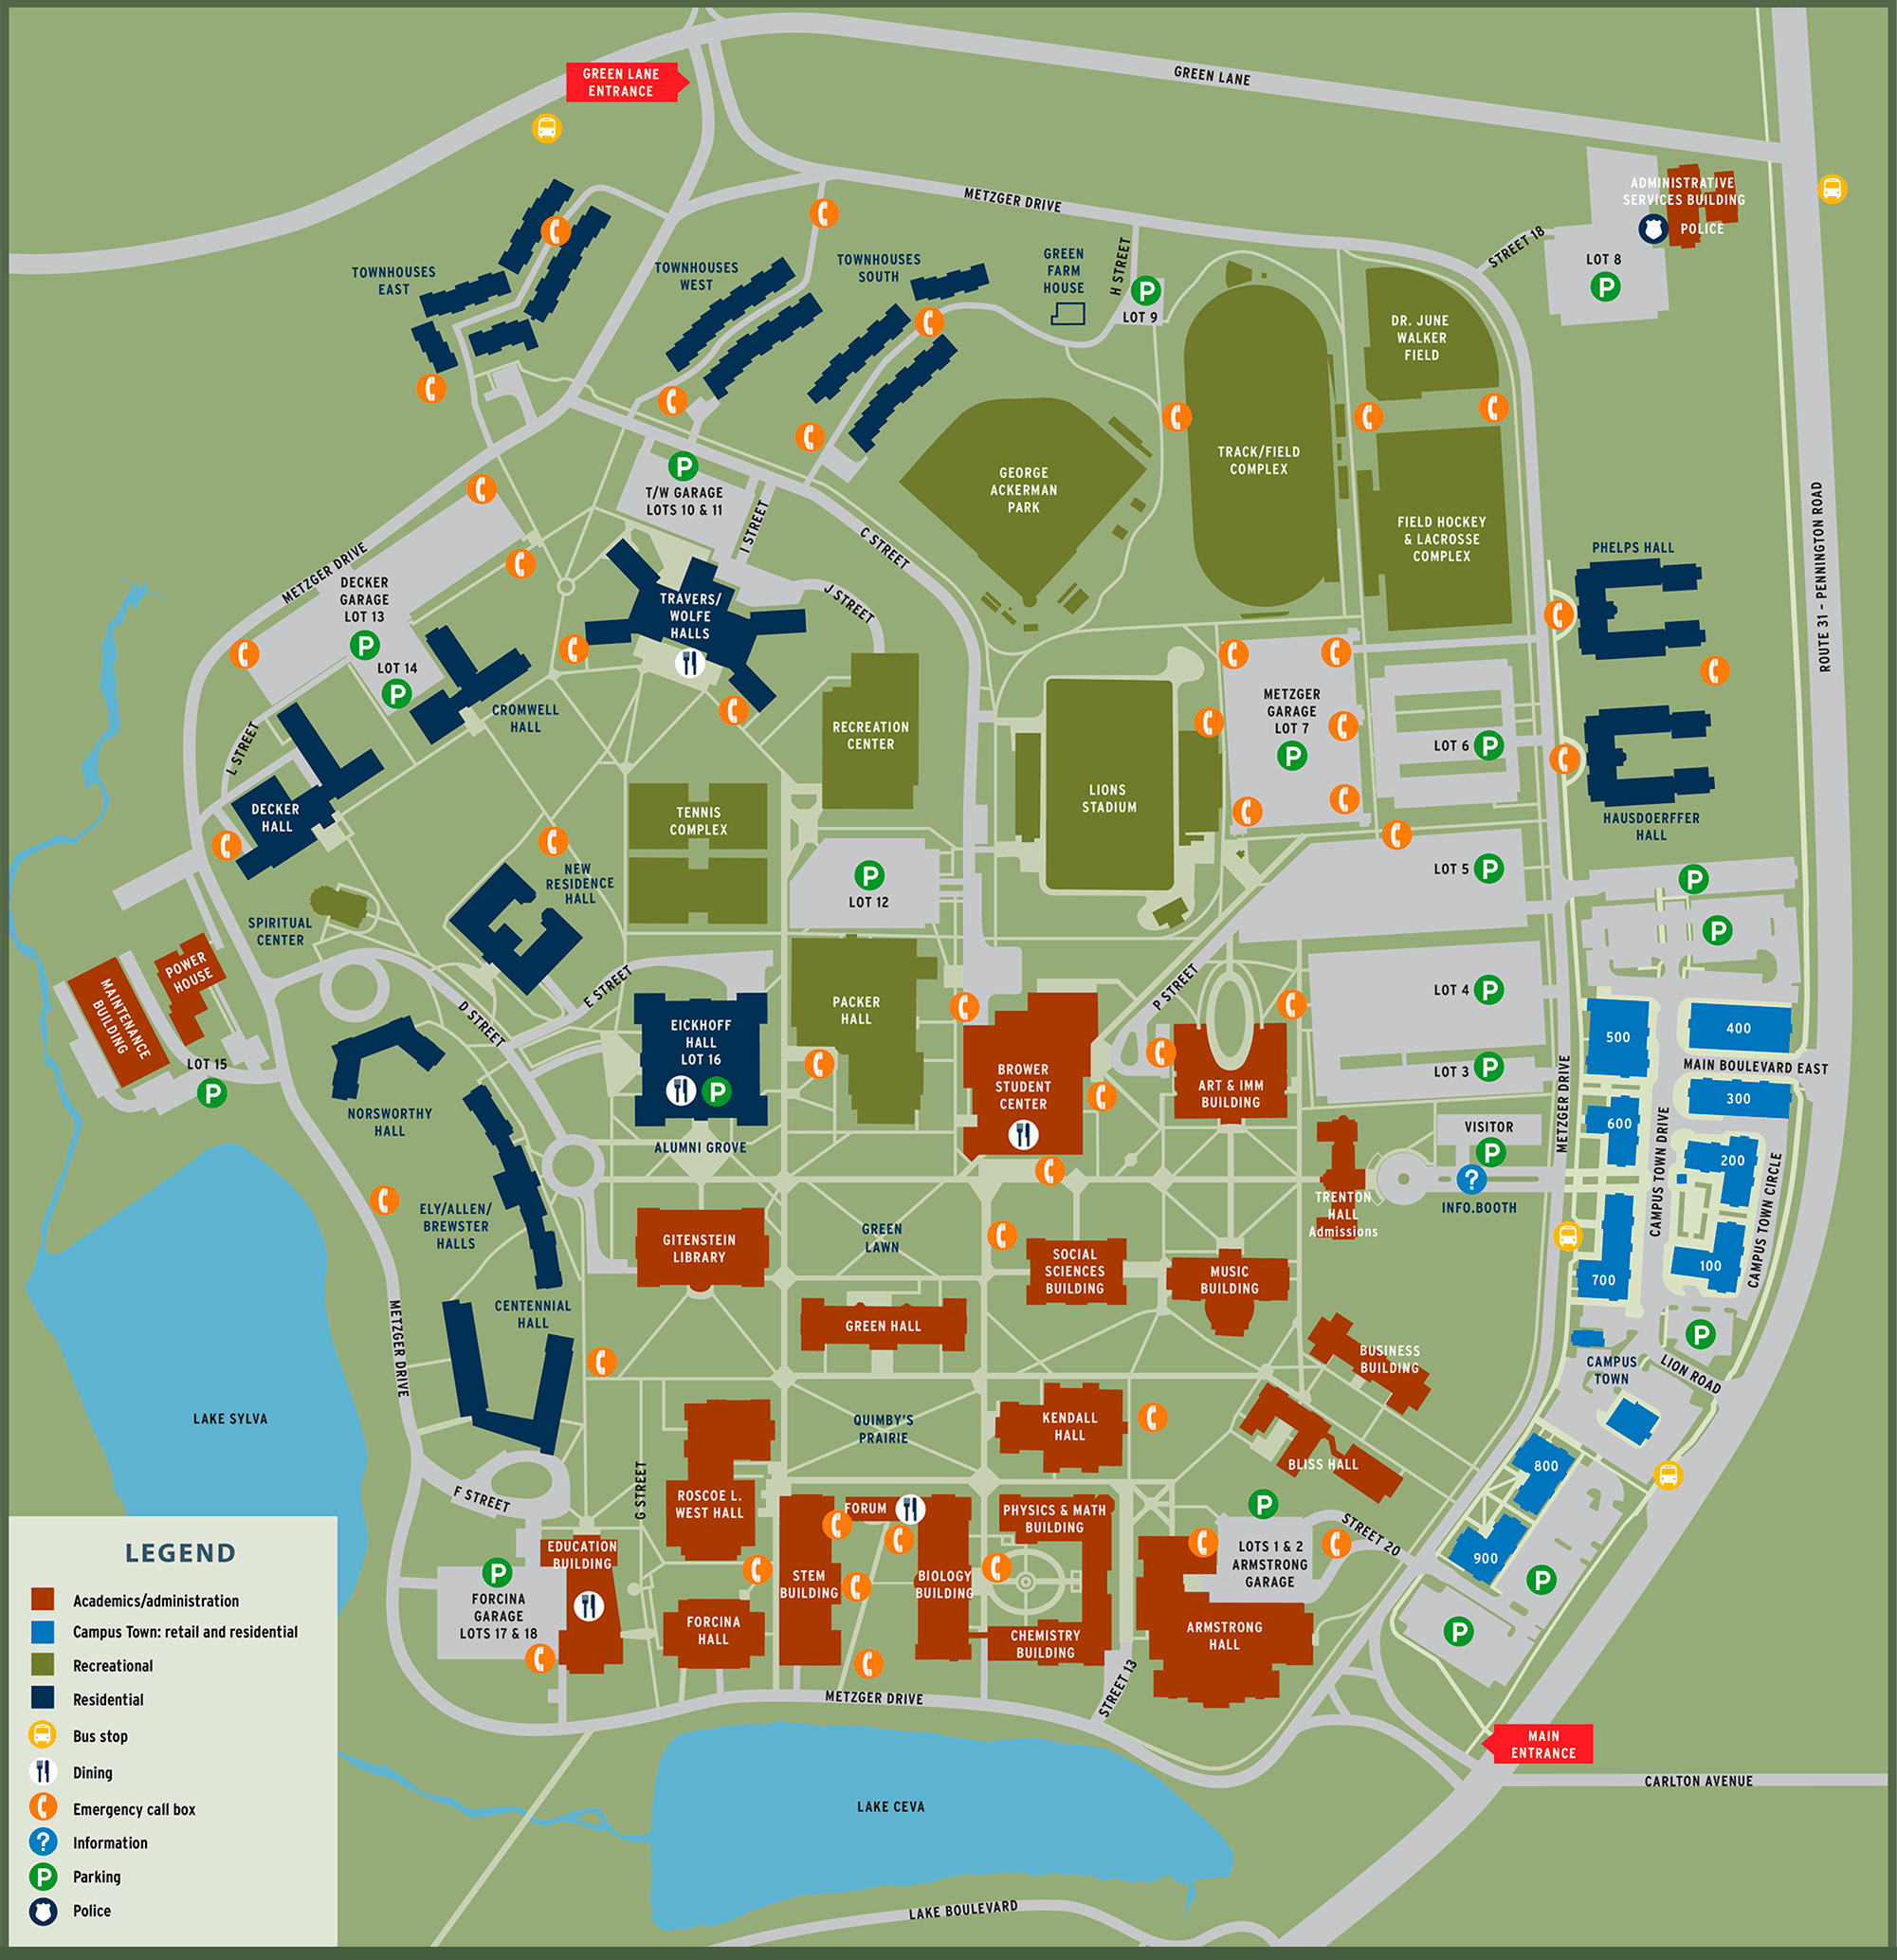 Tcnj Campus Map Campus Map | The College of New Jersey